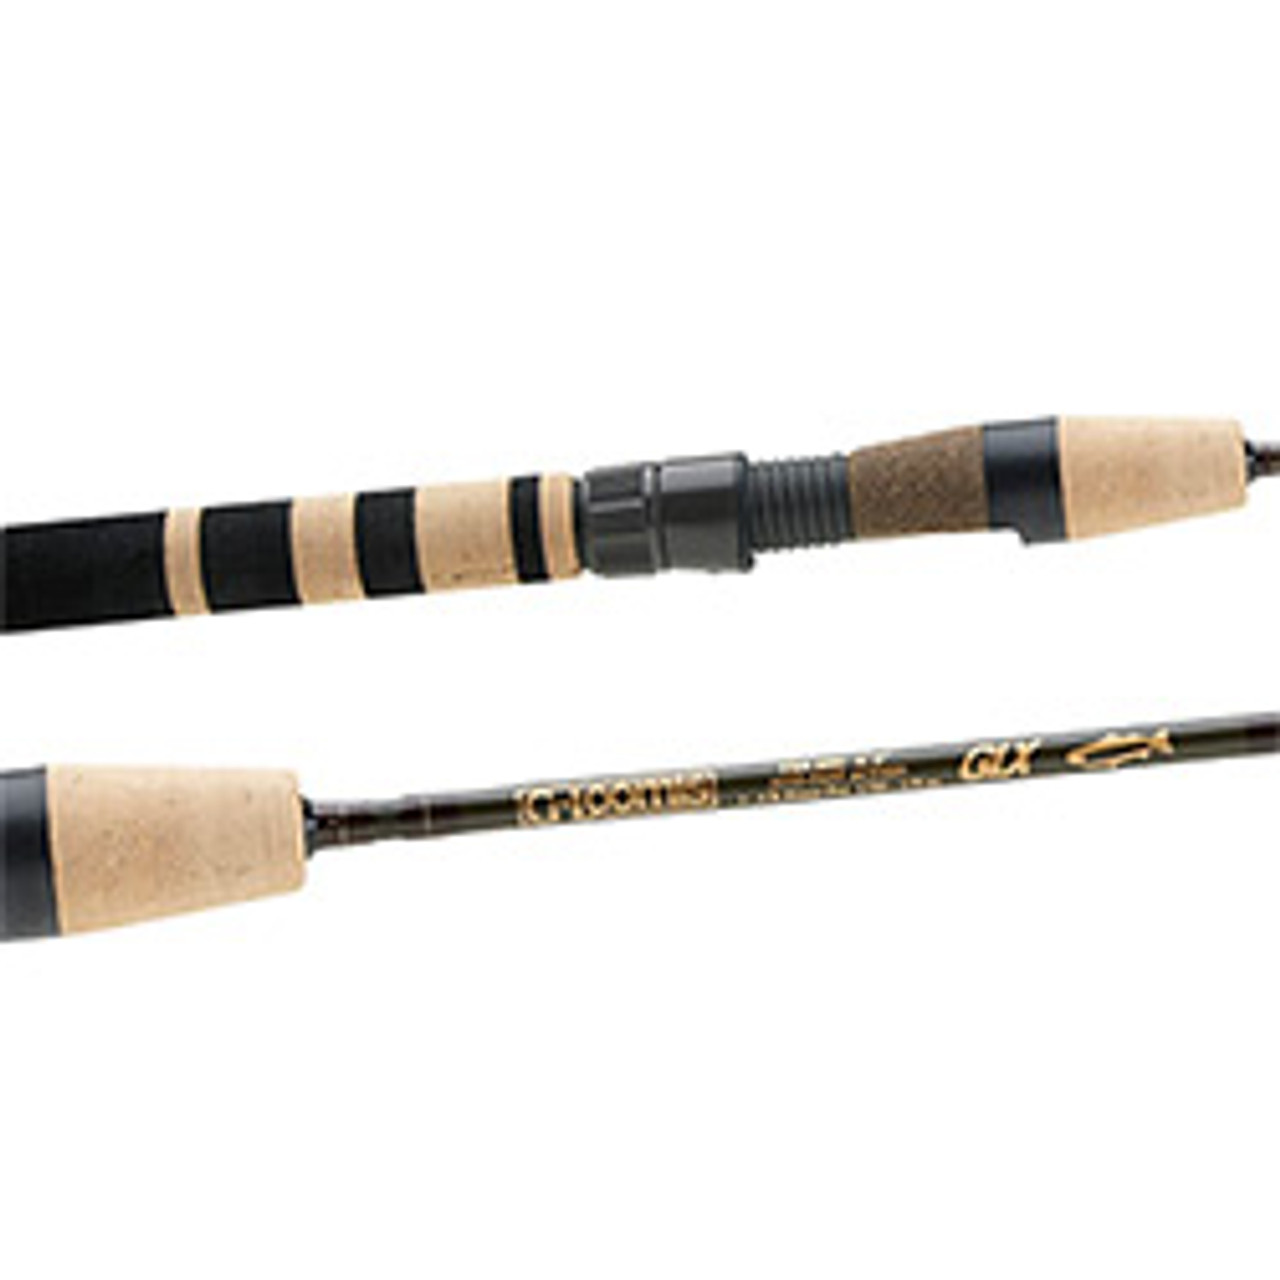 Trout Series Spinning Rods by G. Loomis